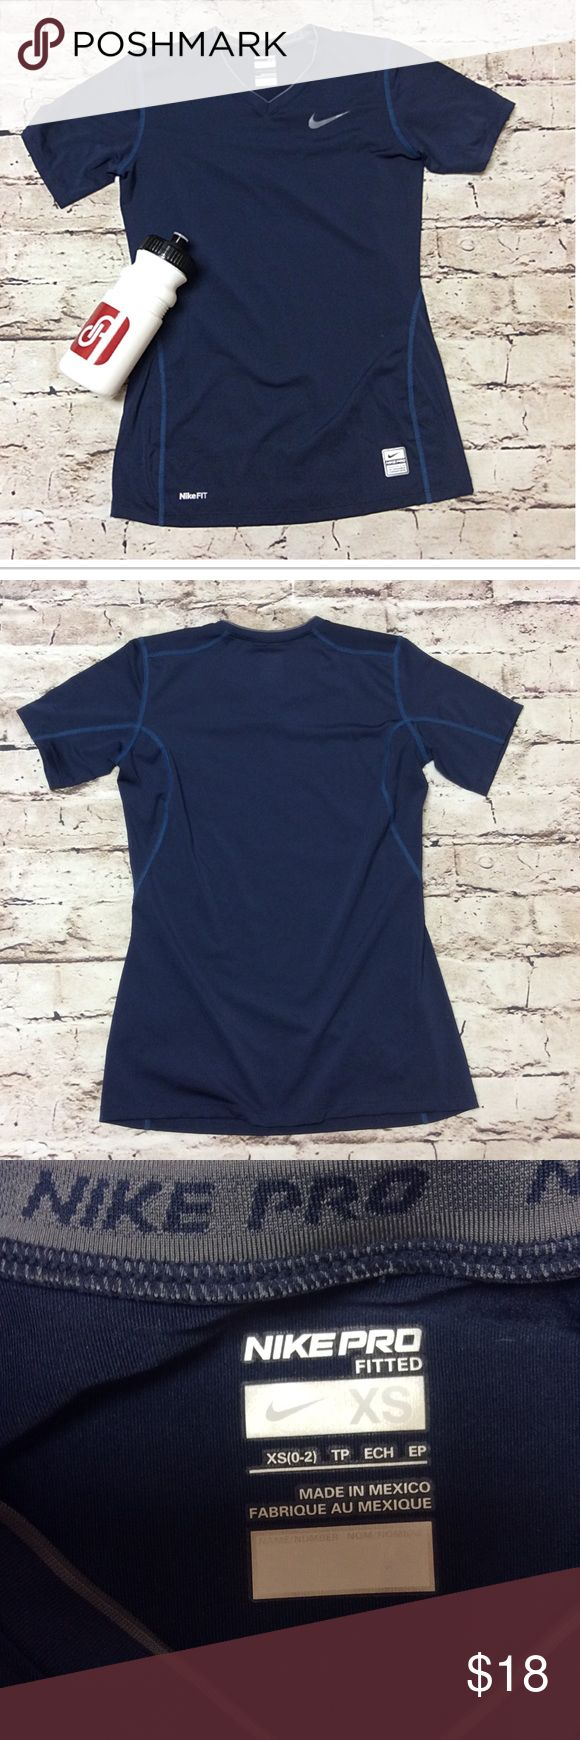 NIKE PRO FITTED ACTIVE TOP IN NAVY BLUE Gently used active top by Nike. Fitted style Nike Tops Tees - Short Sleeve